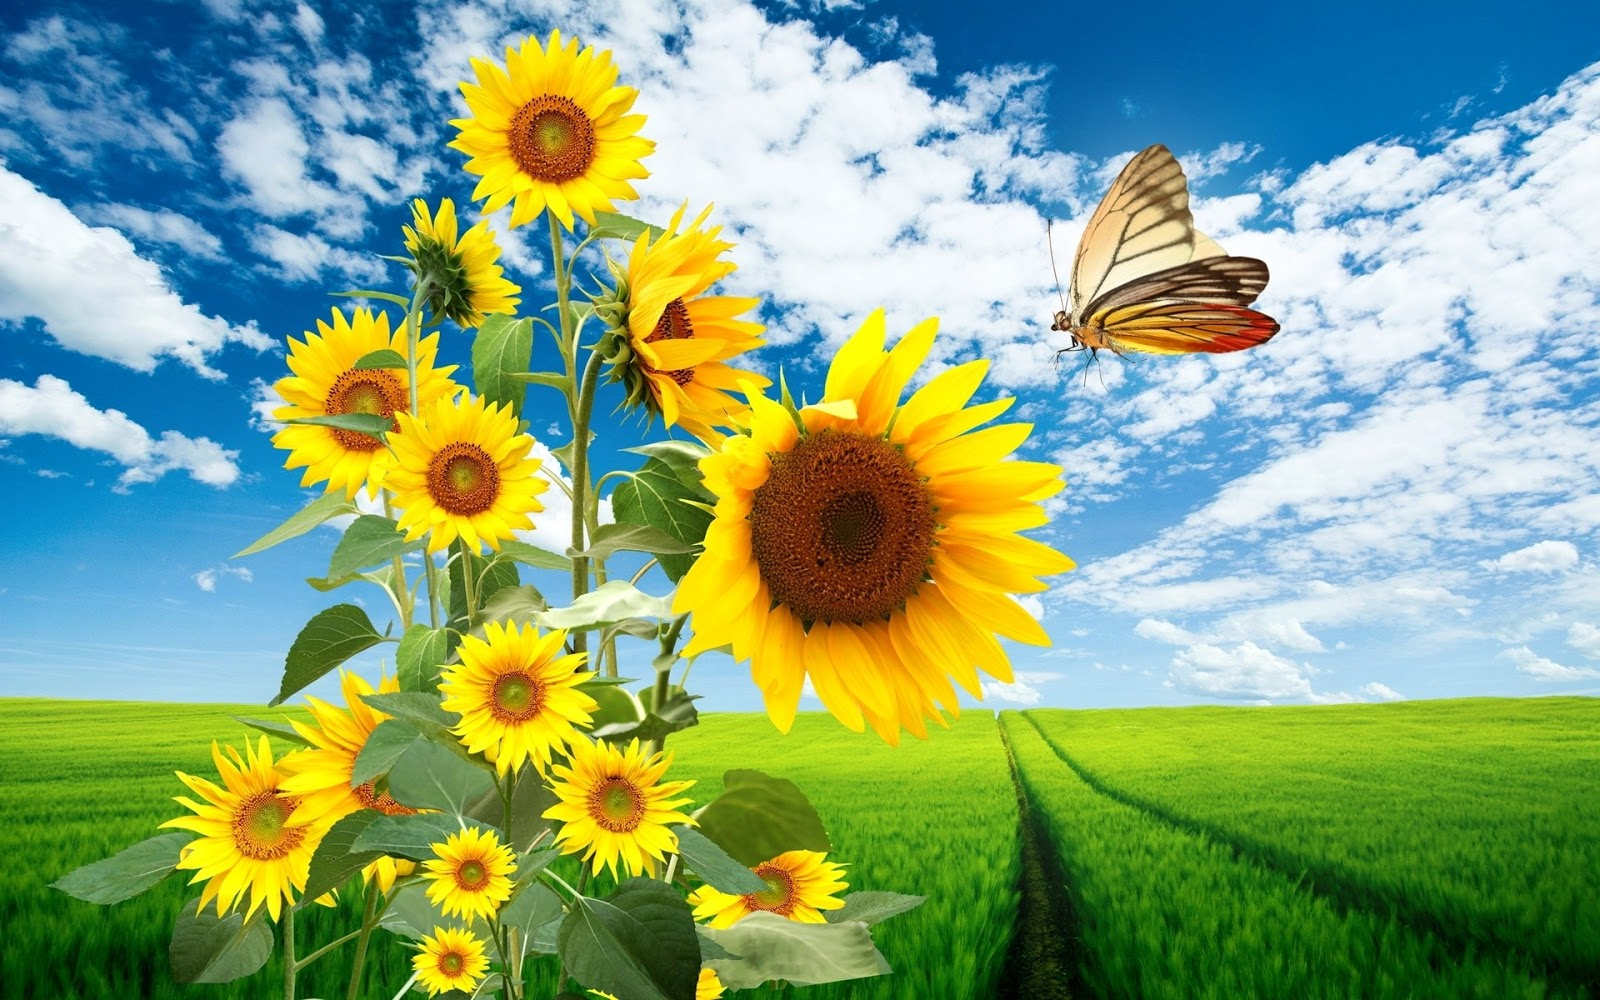 Wallpapers Sols: Nature Sunflowers Hd Wallpapers